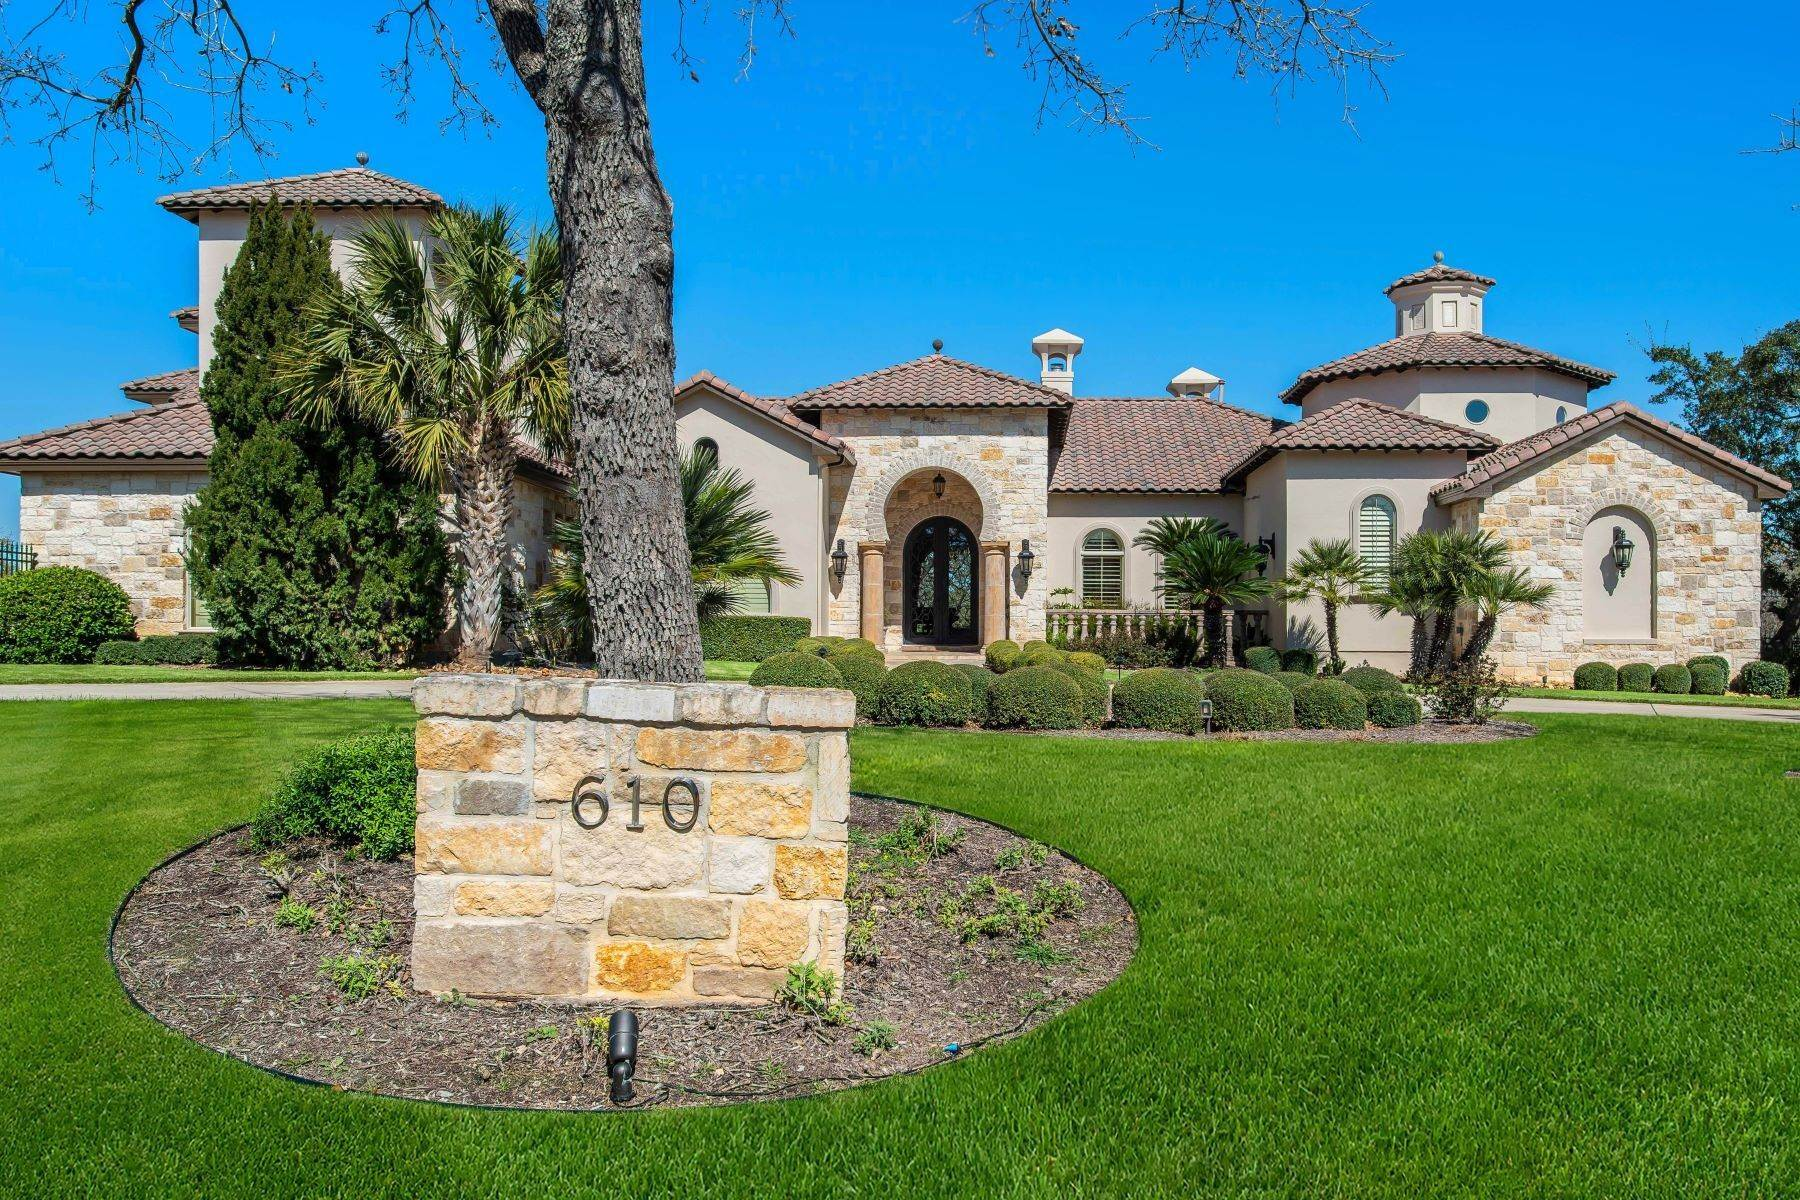 Single Family Homes for Sale at 610 Bentley Manor, Shavano Park, TX 78249 610 Bentley Manor Shavano Park, Texas 78249 United States